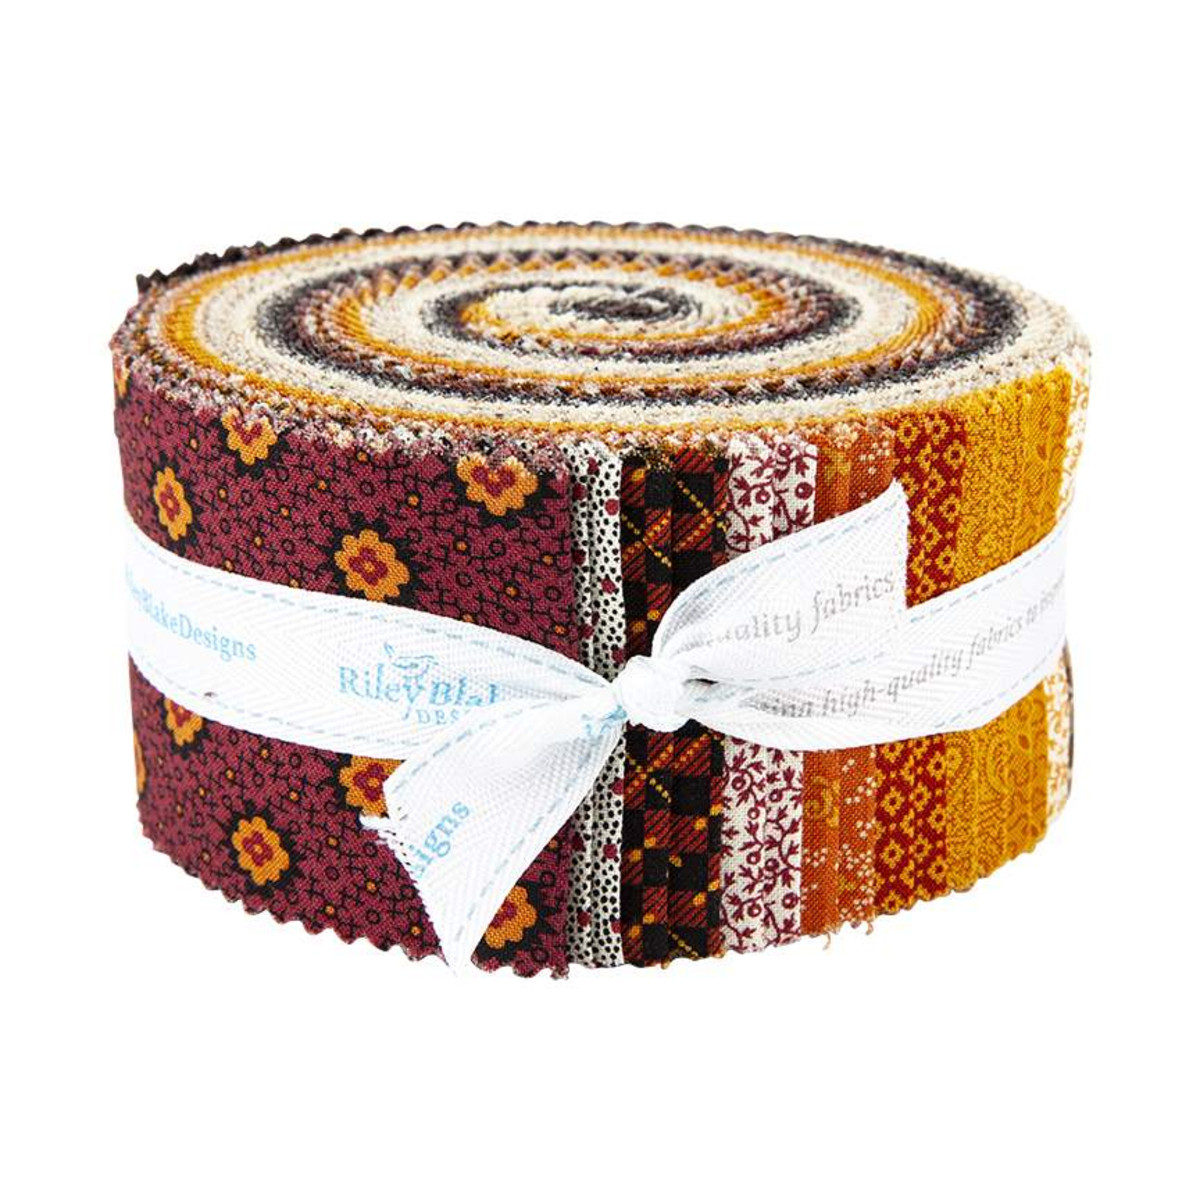 Riley Blake Jelly Roll - Bountiful Autumn by Stacy West